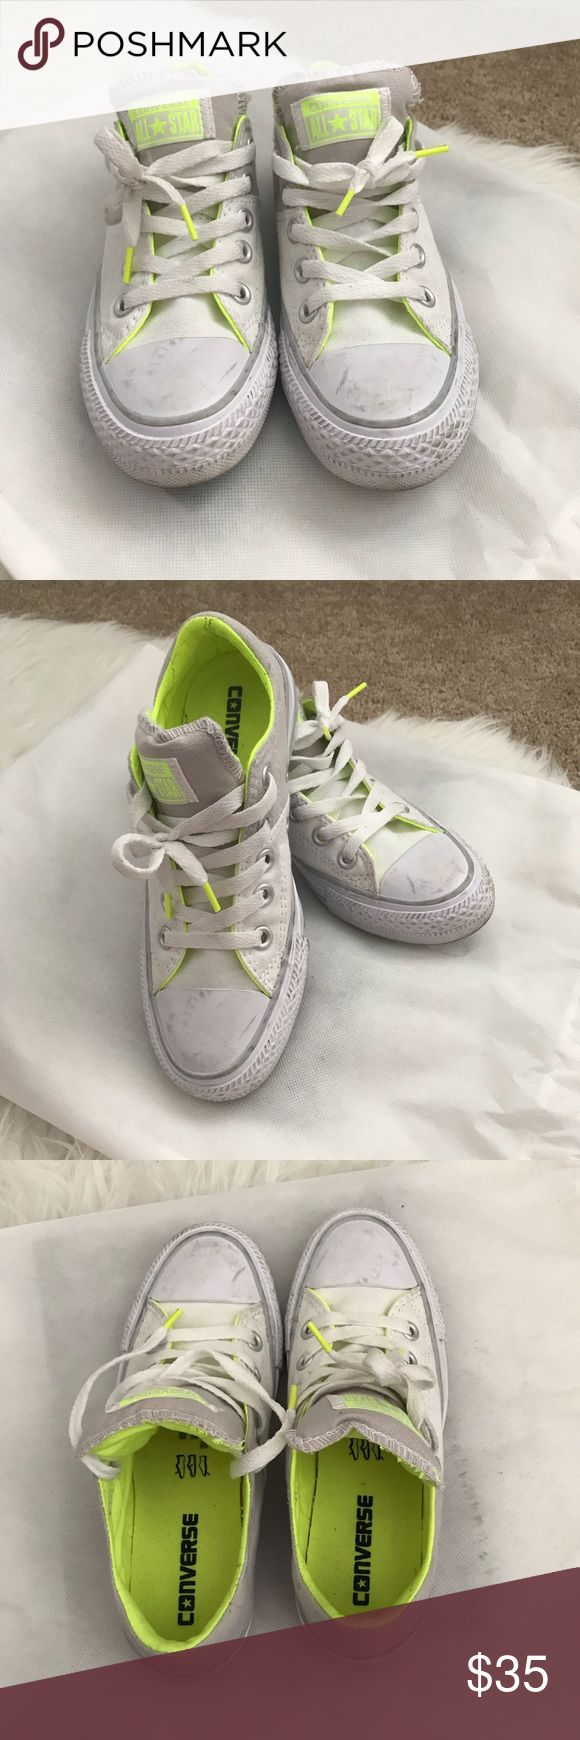 CONVERSE White with Gray Laced Up Shoes Converse Laced Up Sneakers Size 5 (women's) Color: White, Gray & Neon Green Worn a couple of times. It got dirty coz it got buried under my kids shoes. 😬 But it made it look better with a natural wear like that. 😁 In excellent condition!  Please ask me for any questions you may have. 🤗 Converse Shoes Sneakers